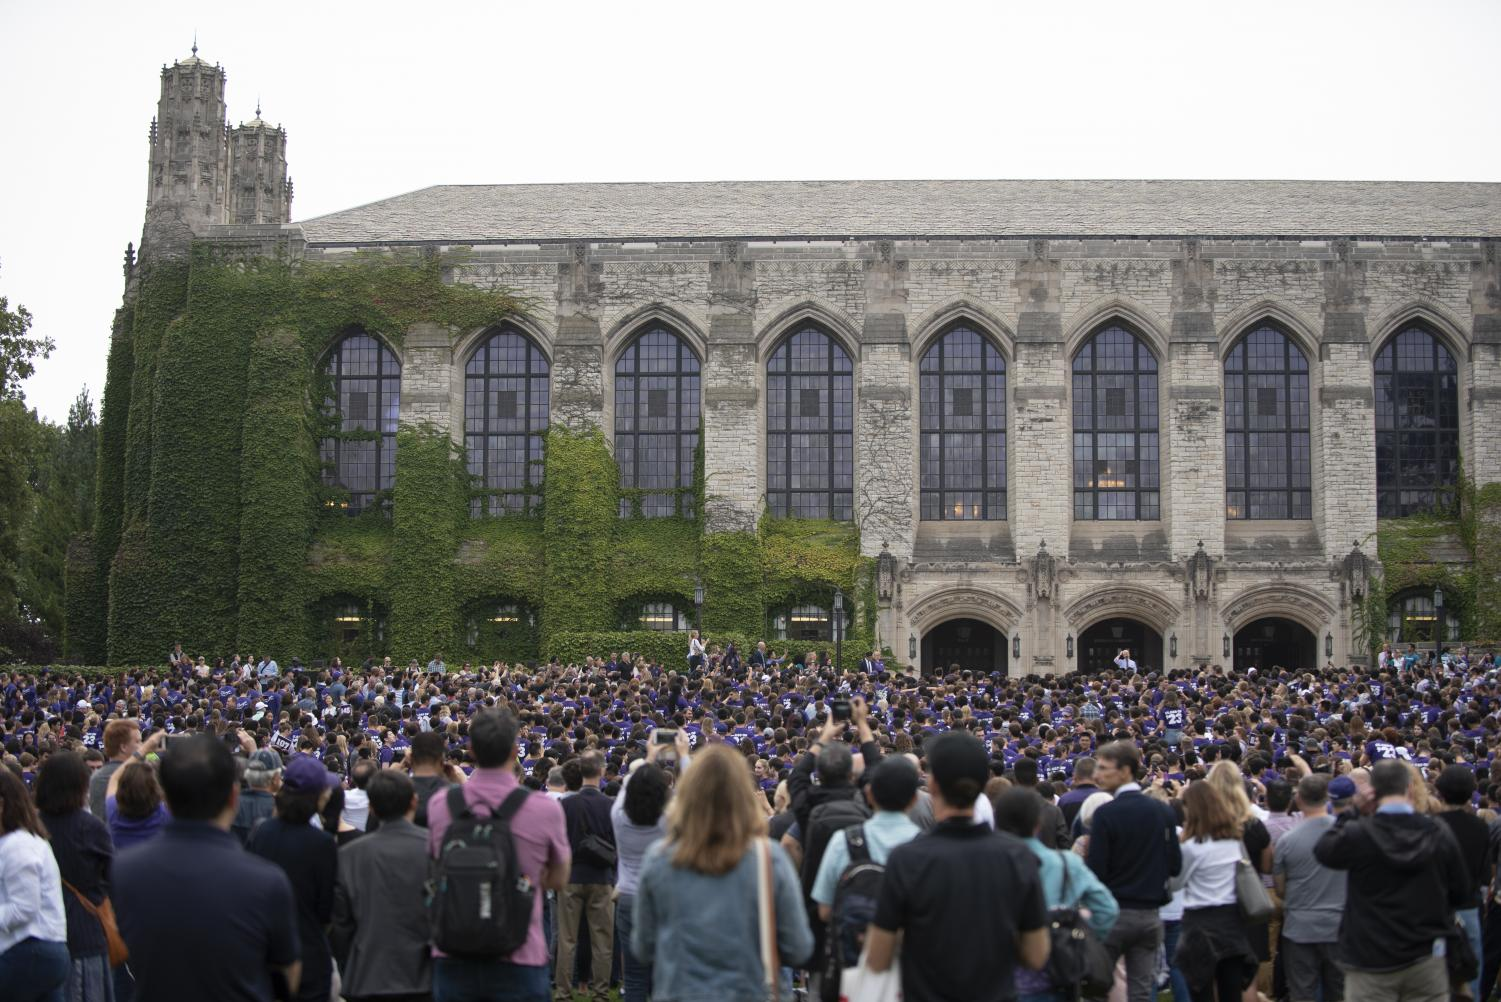 Transfers and the Class of 2023 after March Through The Arch. Twenty-five percent of college students transfer schools at some point in their university careers, according to CNBC.